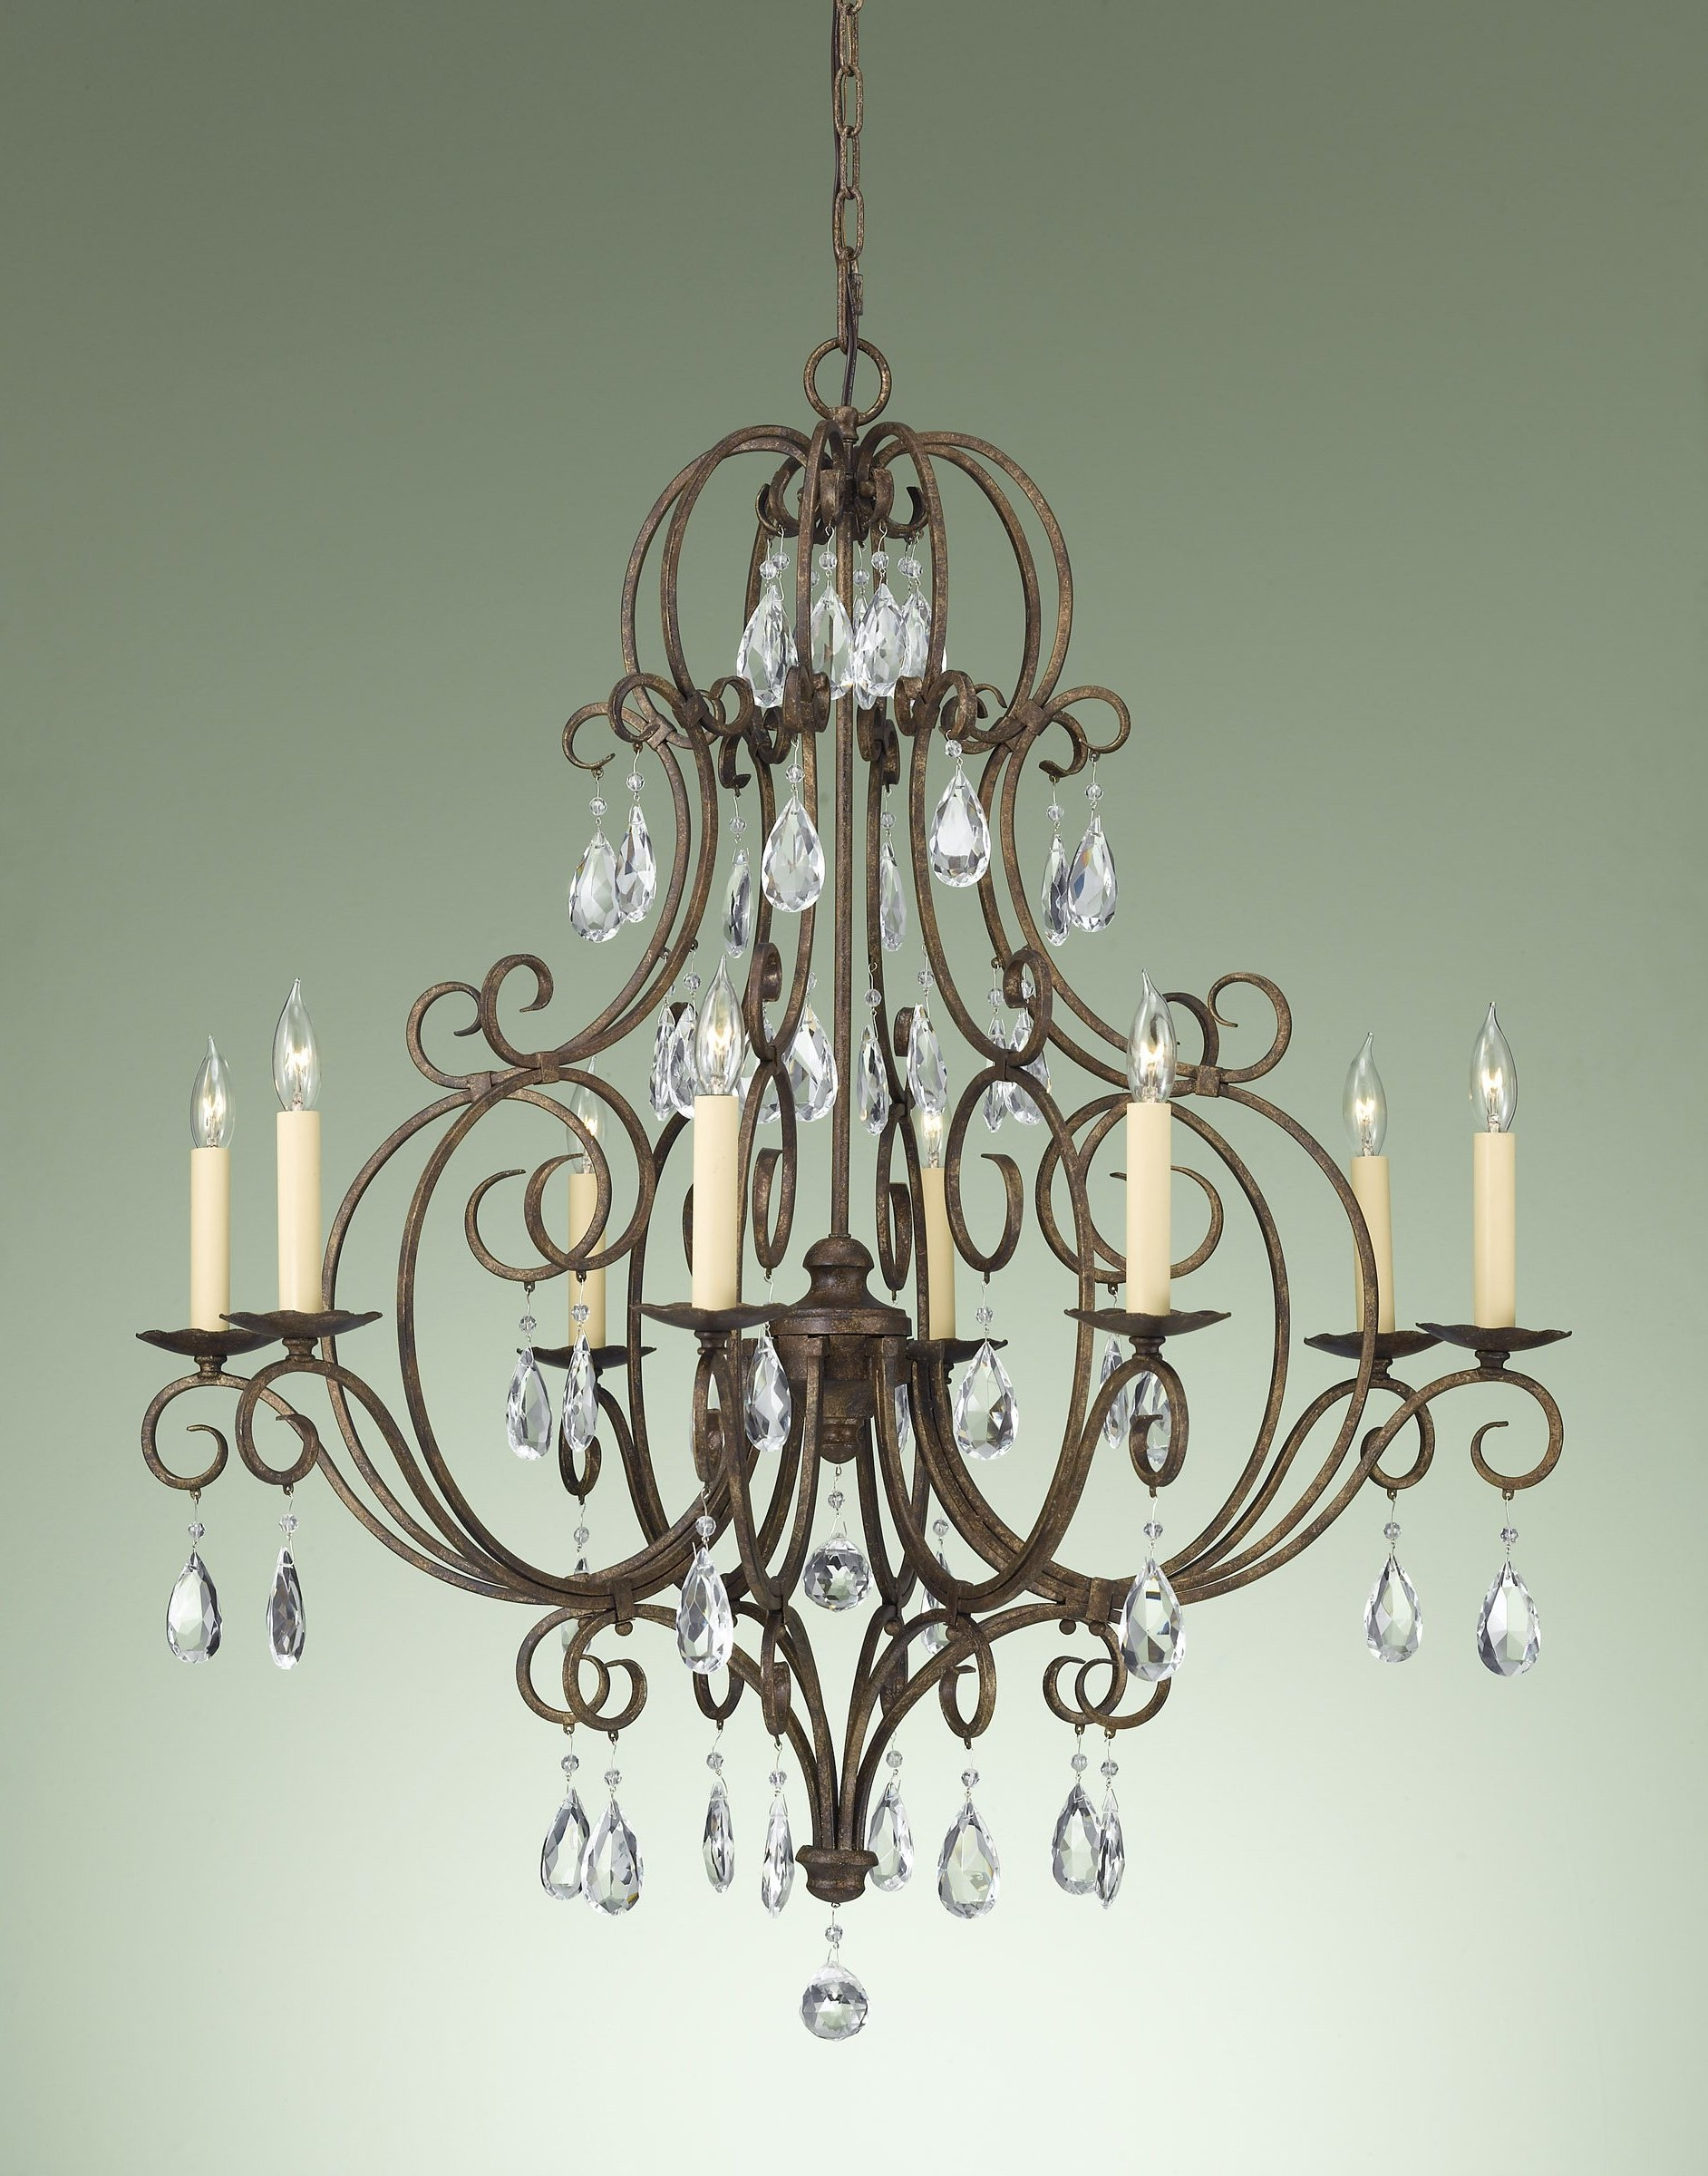 Modern Crystal Chandeliers Home Decor Intended For Bronze And Crystal Chandeliers (Image 12 of 15)